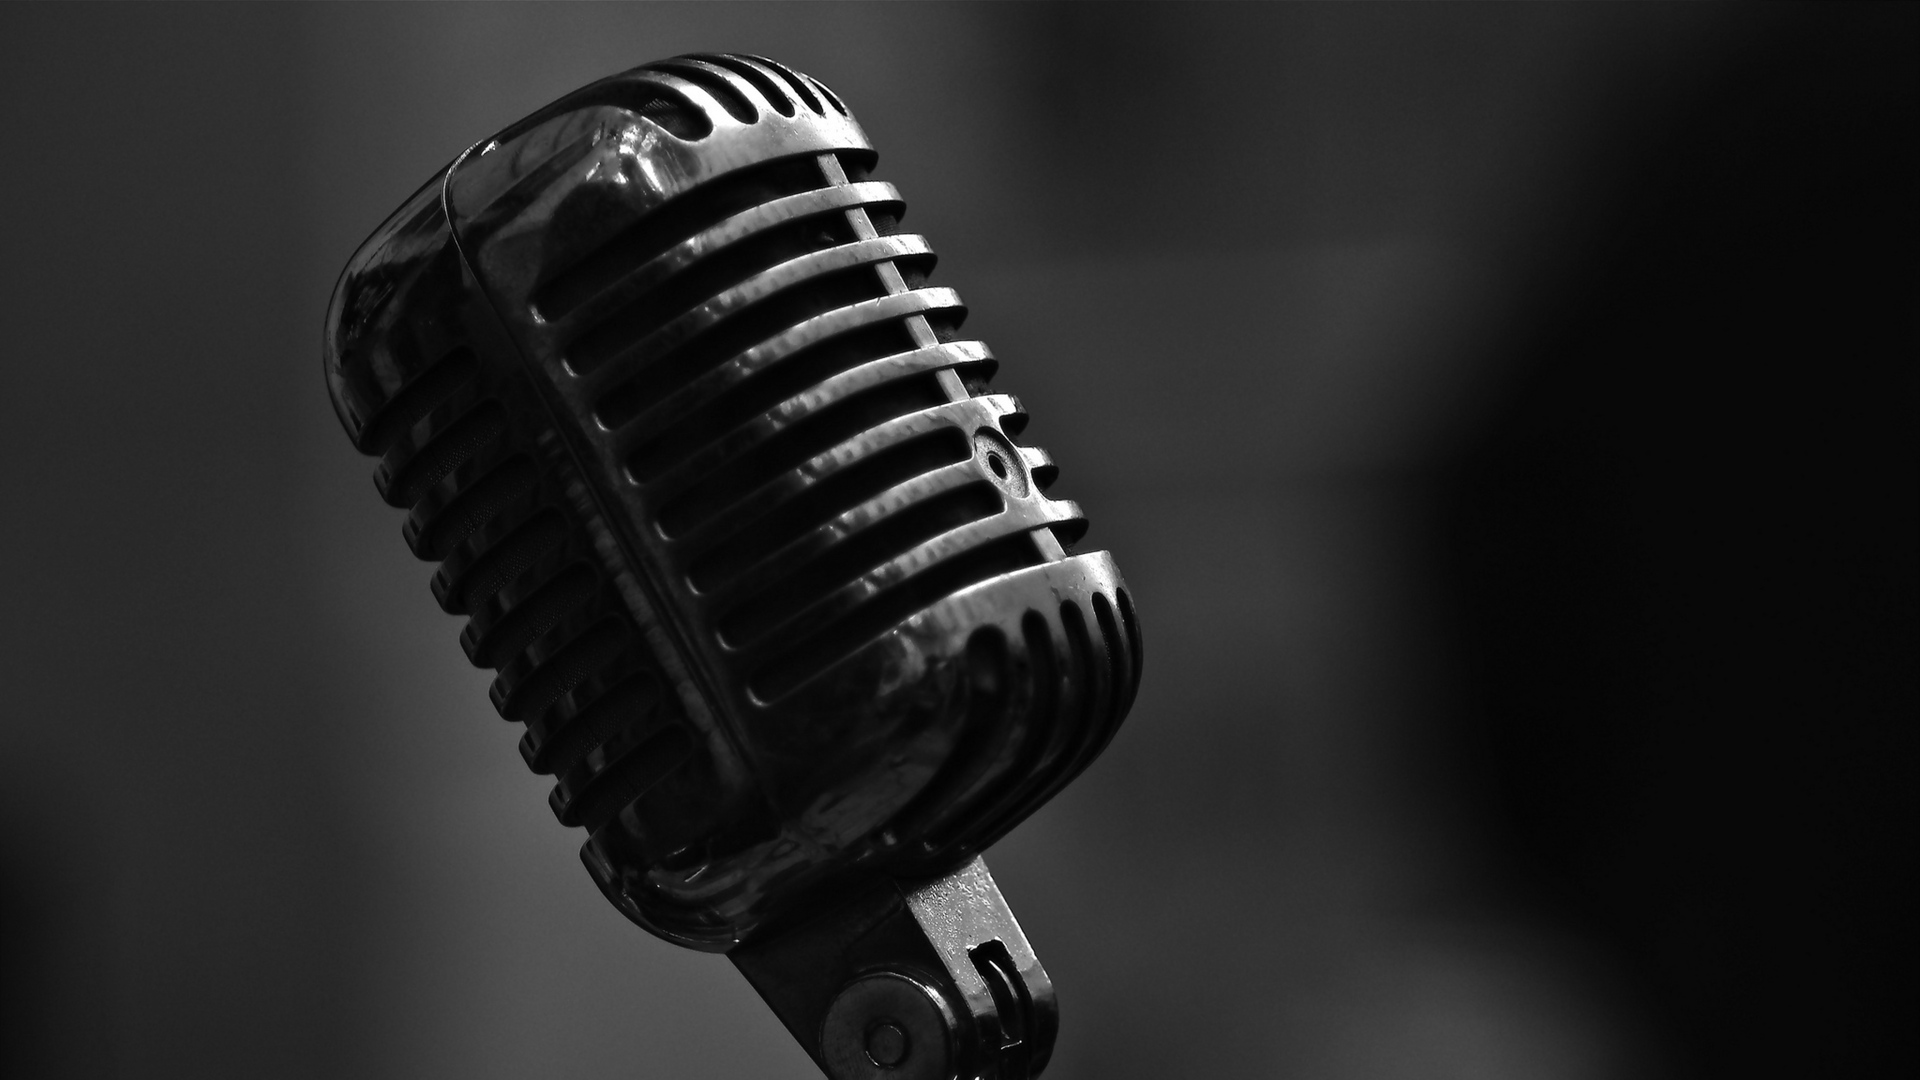 download microphone metal hd 4k wallpapers in 1920x1080 screen